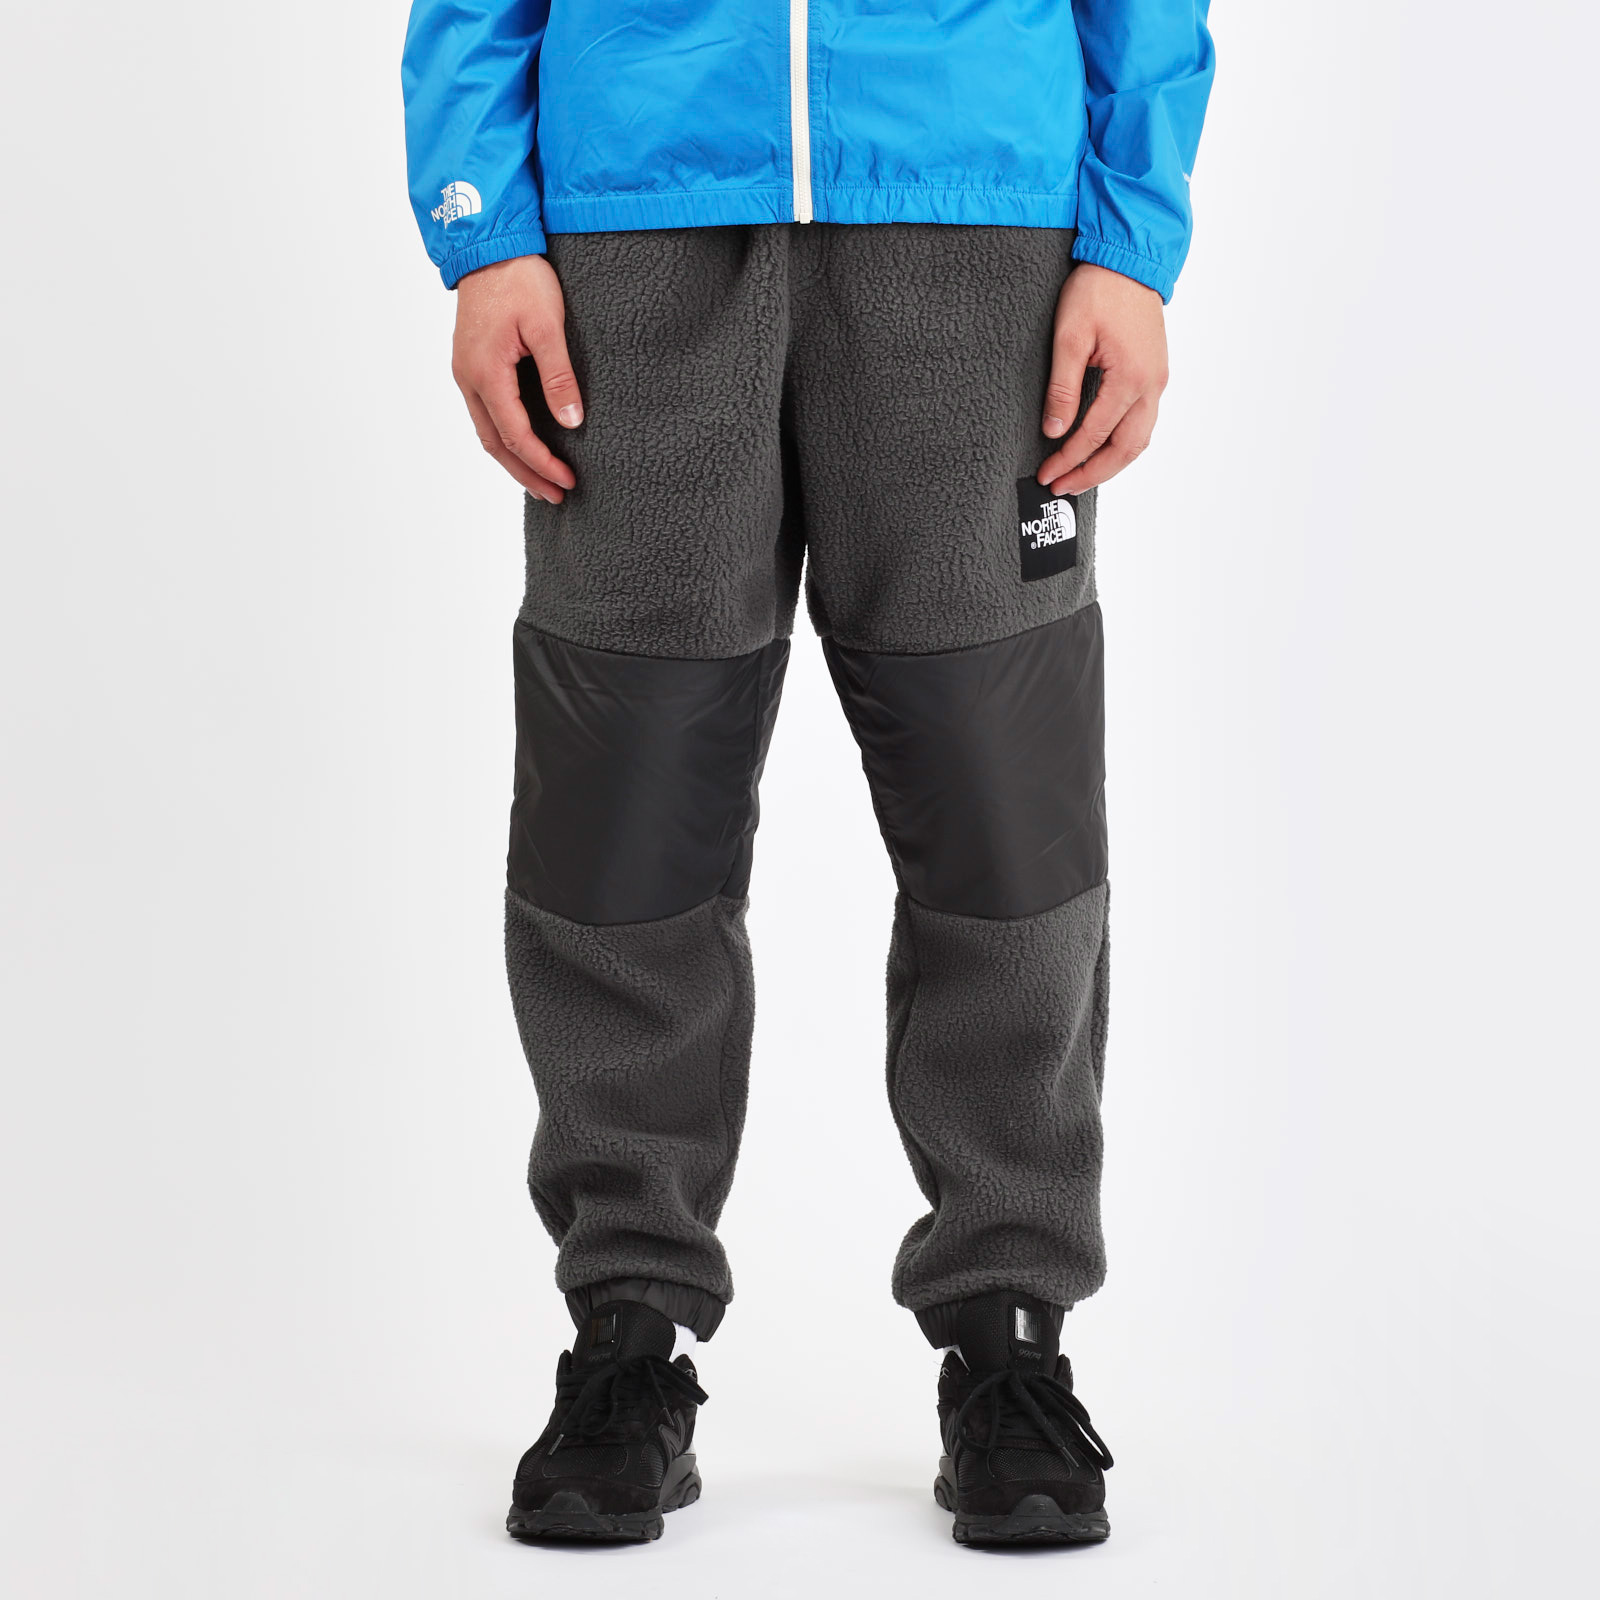 5ac01e3b3 The North Face Denali Fleece Pant - T93l2j0c5reg - Sneakersnstuff ...